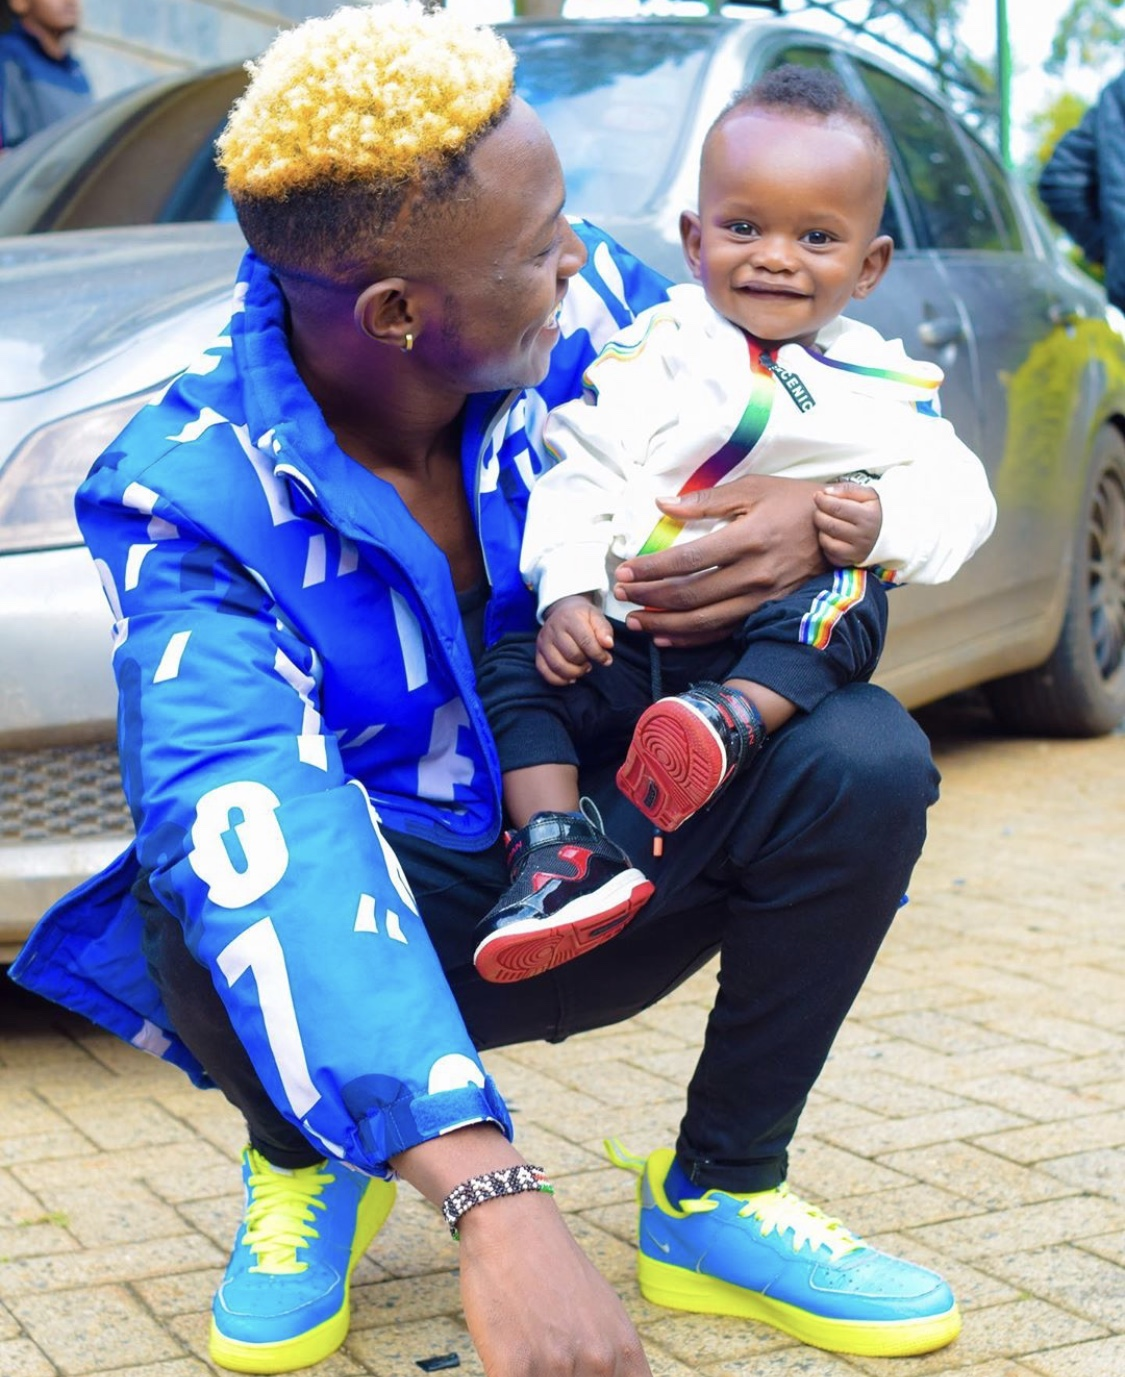 Mr Seed´s toddler son lands brand ambassadorial deal, barely months after unveiling his face